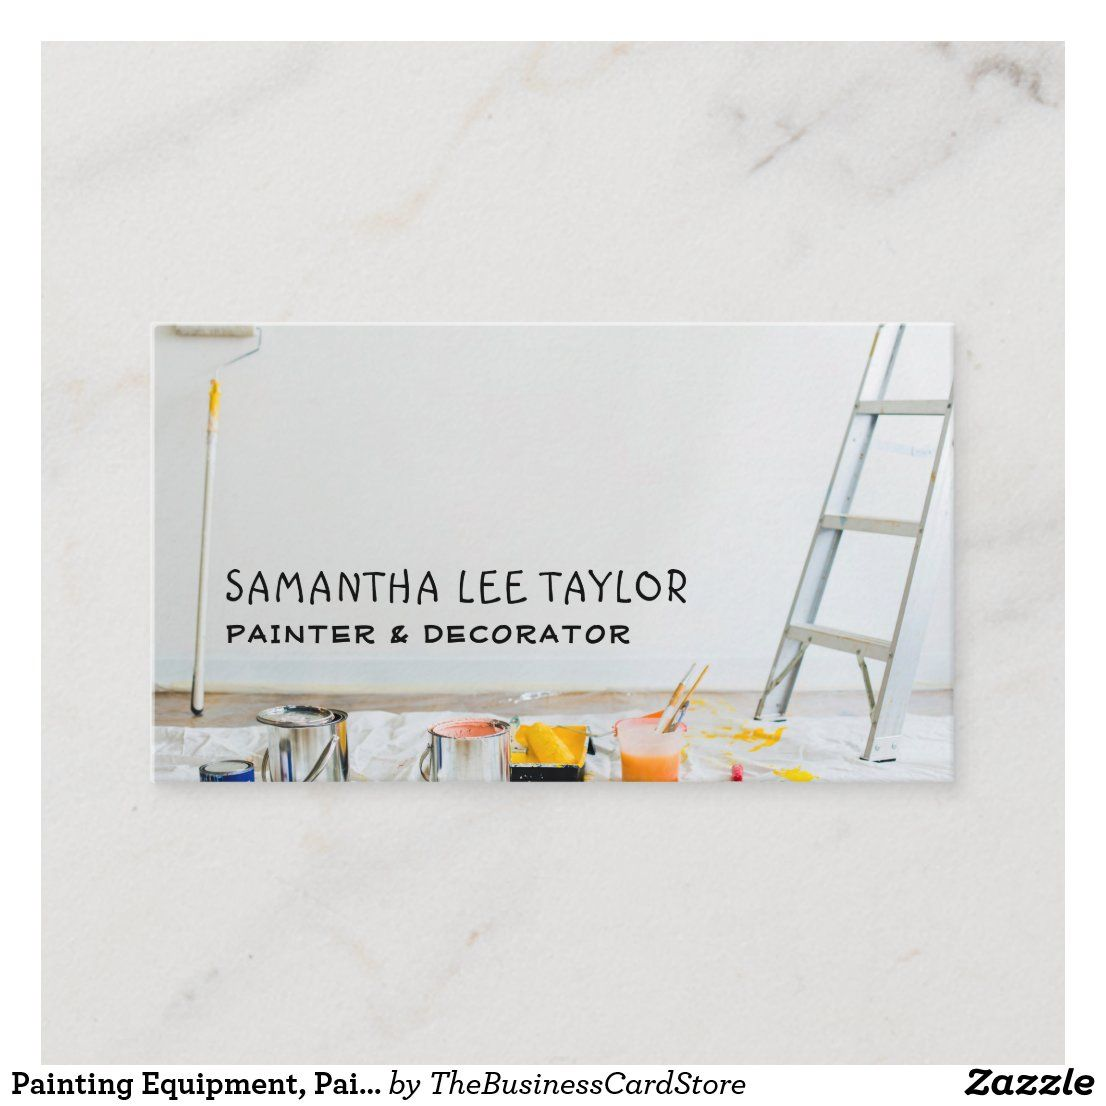 Painting Equipment Painter Decorator Business Card Zazzle Com Decorator Business Card Painter And Decorator Painter Business Card